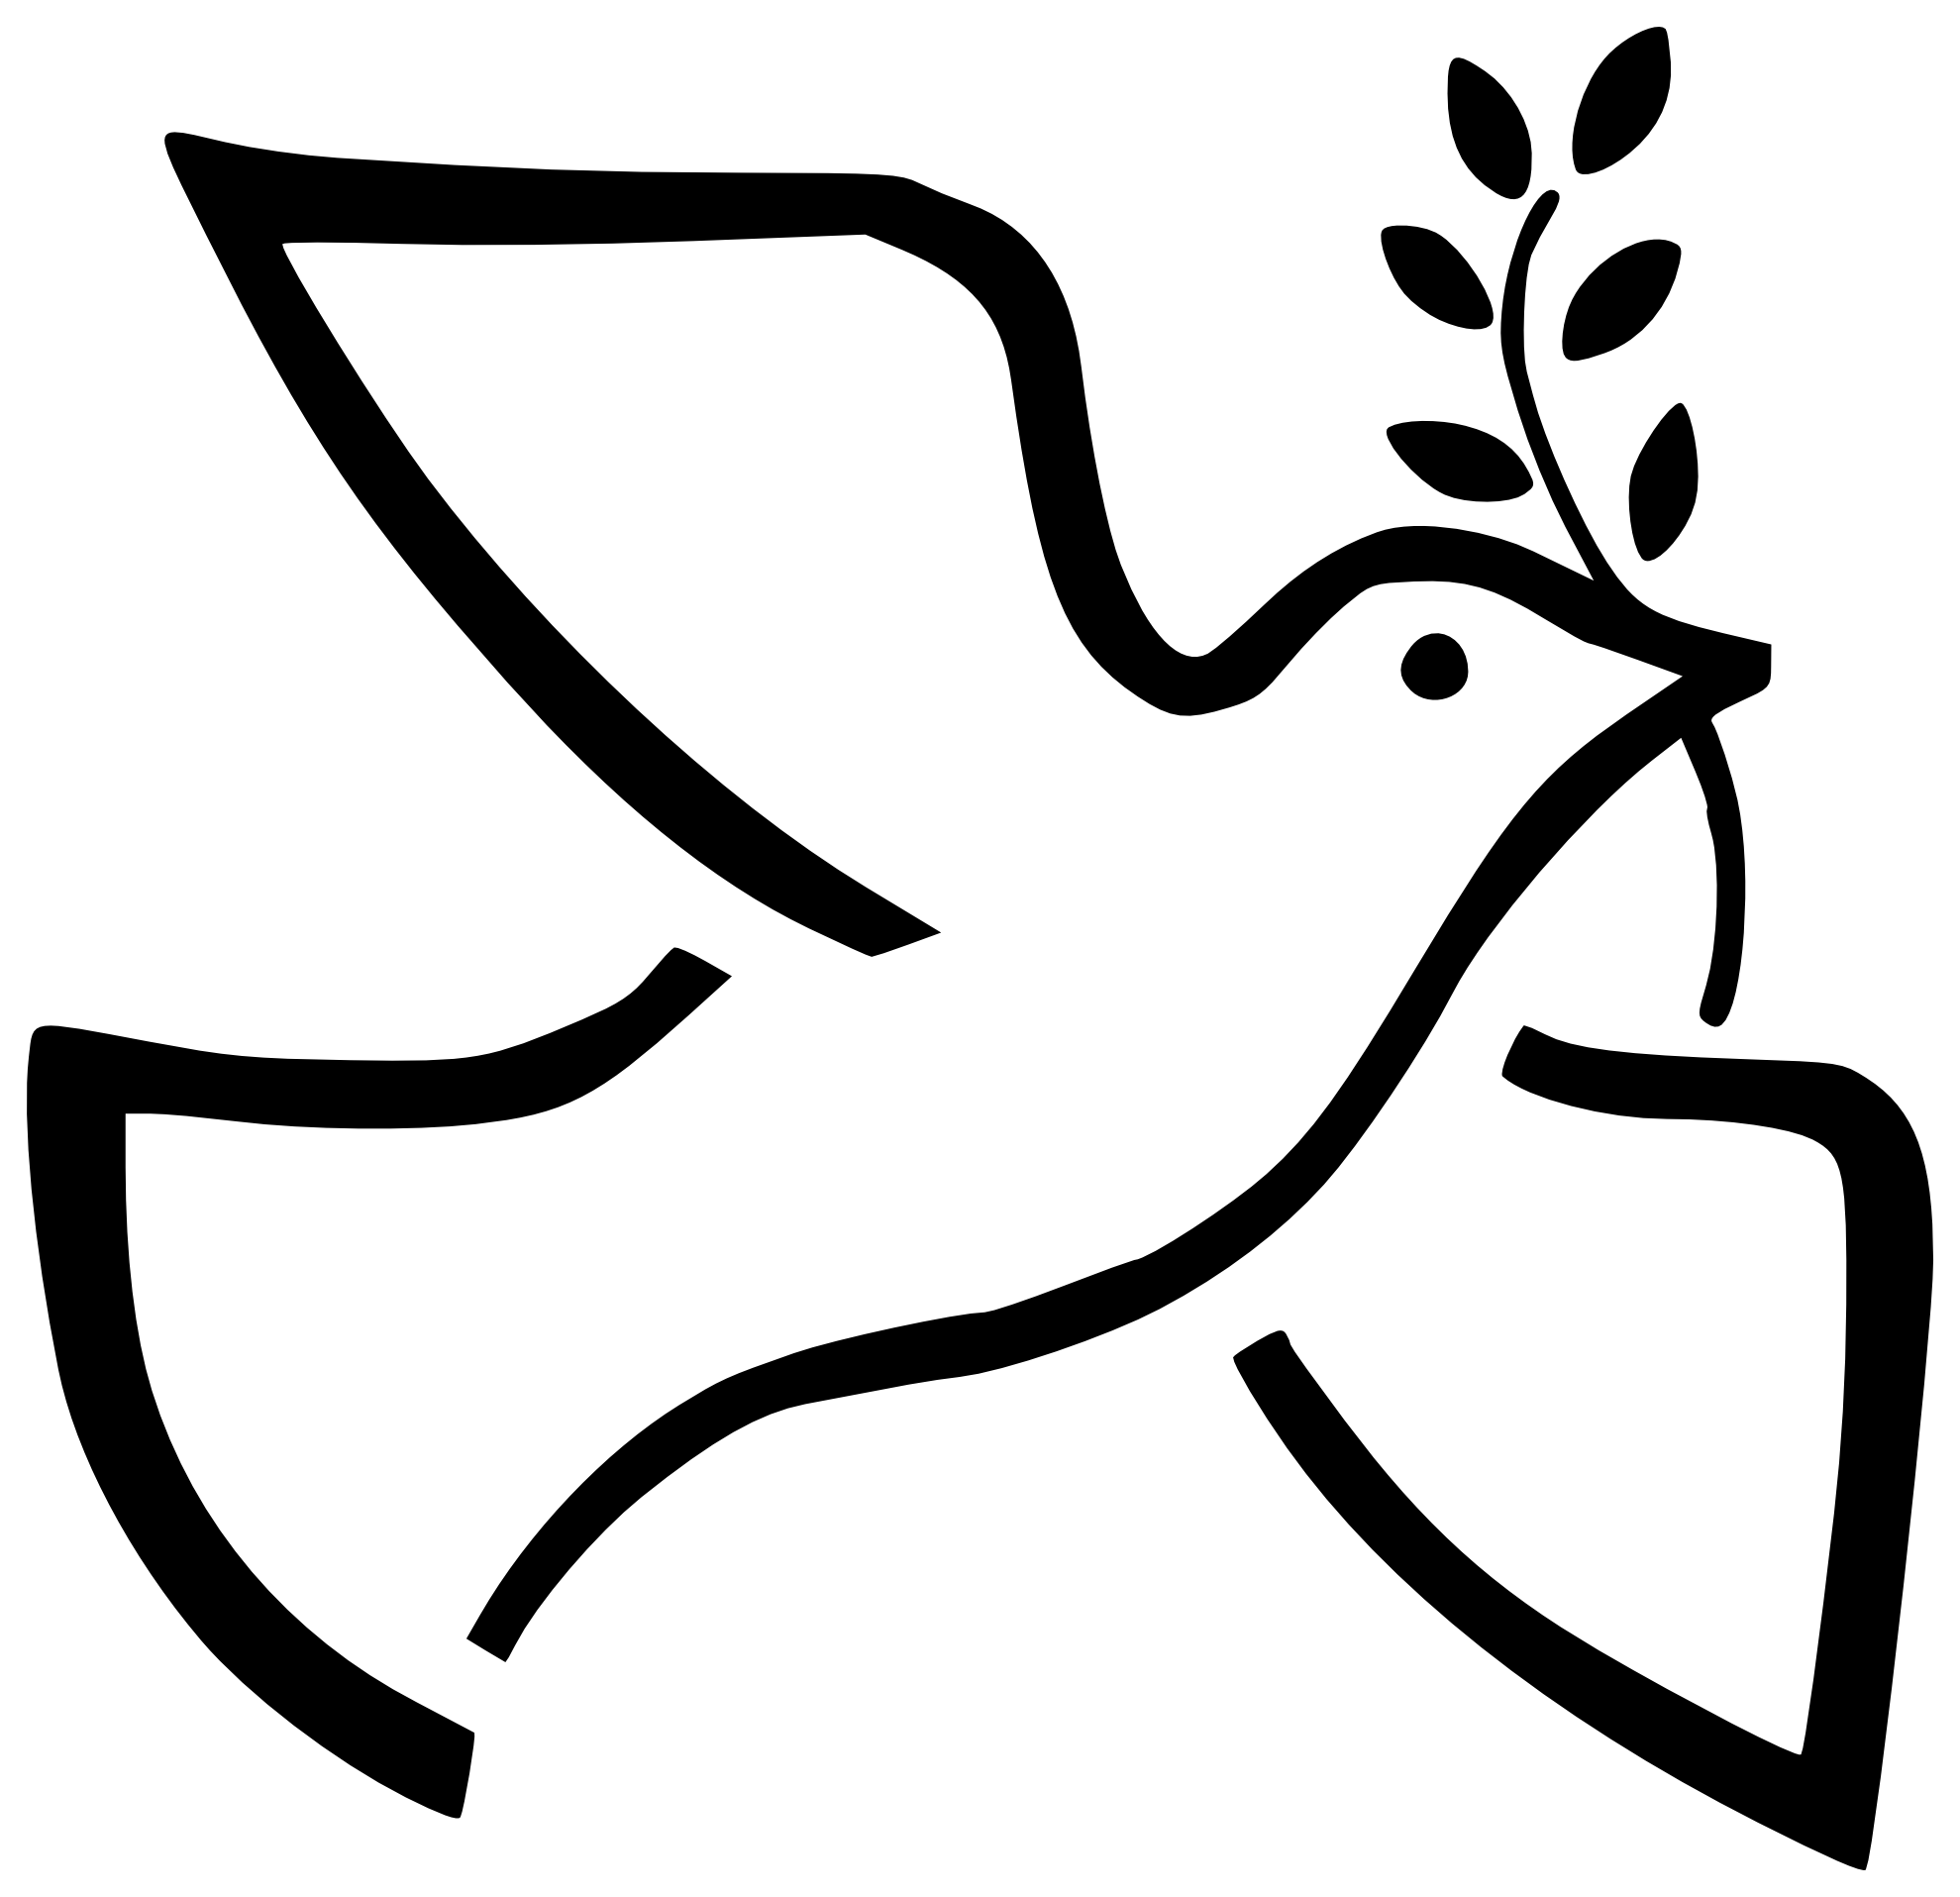 Christian vector dove. In memoriam clip art